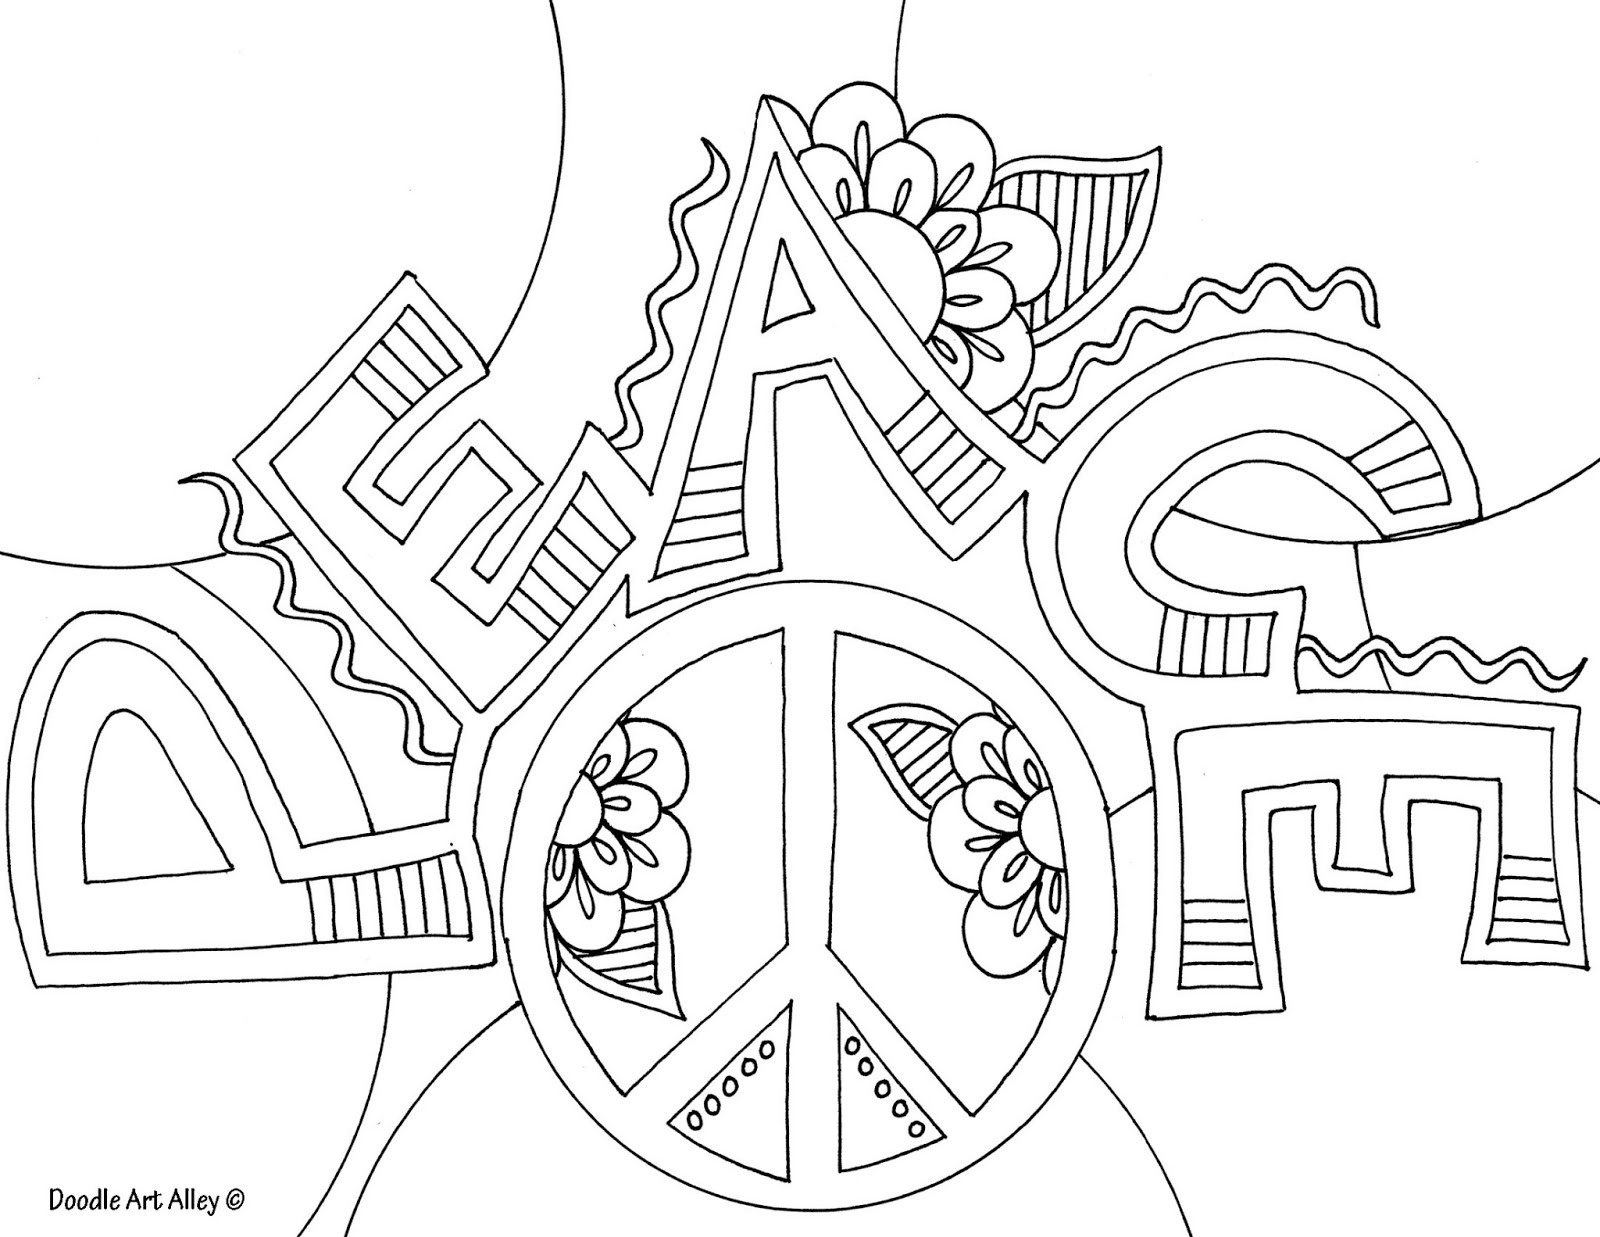 Teacher S Life Made Easy Free Awesome Coloring Pages Peace Colouring Pages